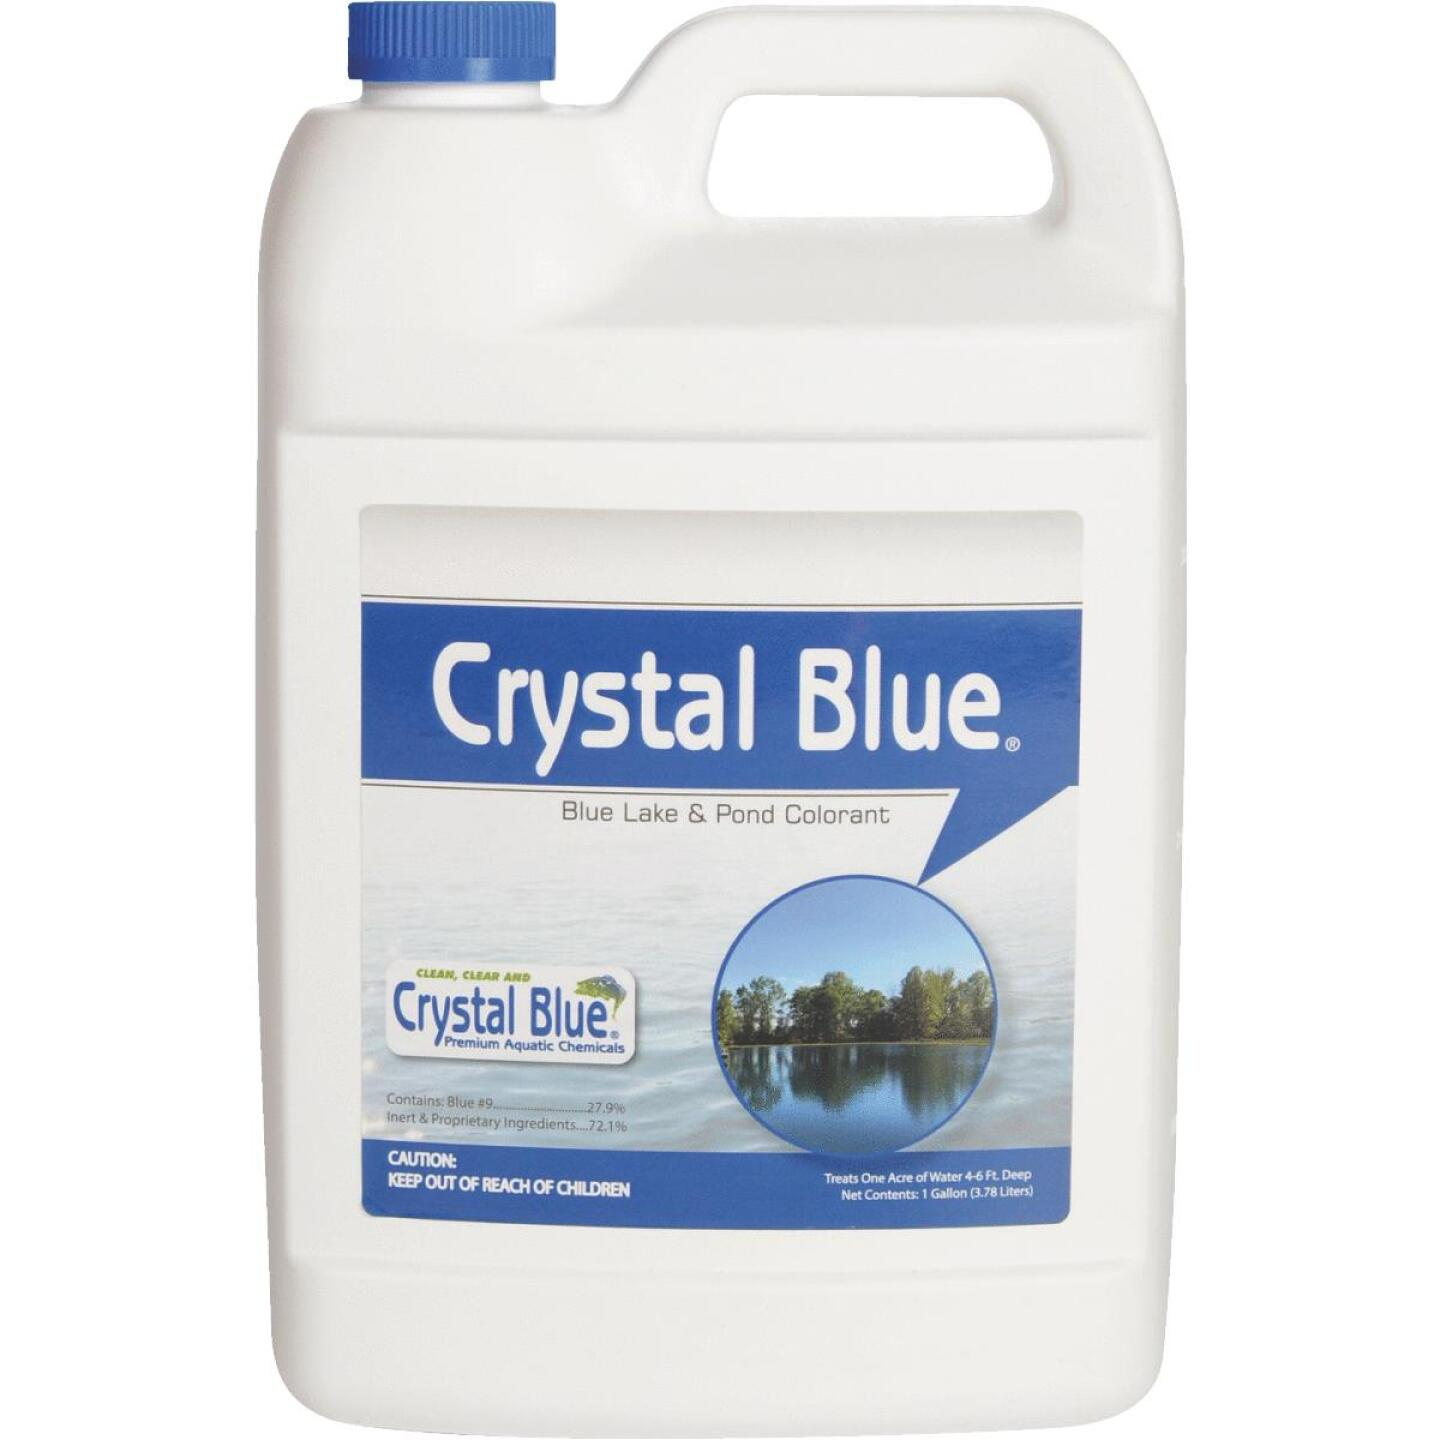 Crystal Blue 1 Gal. 1-Acre Blue Lake & Pond Colorant Image 1